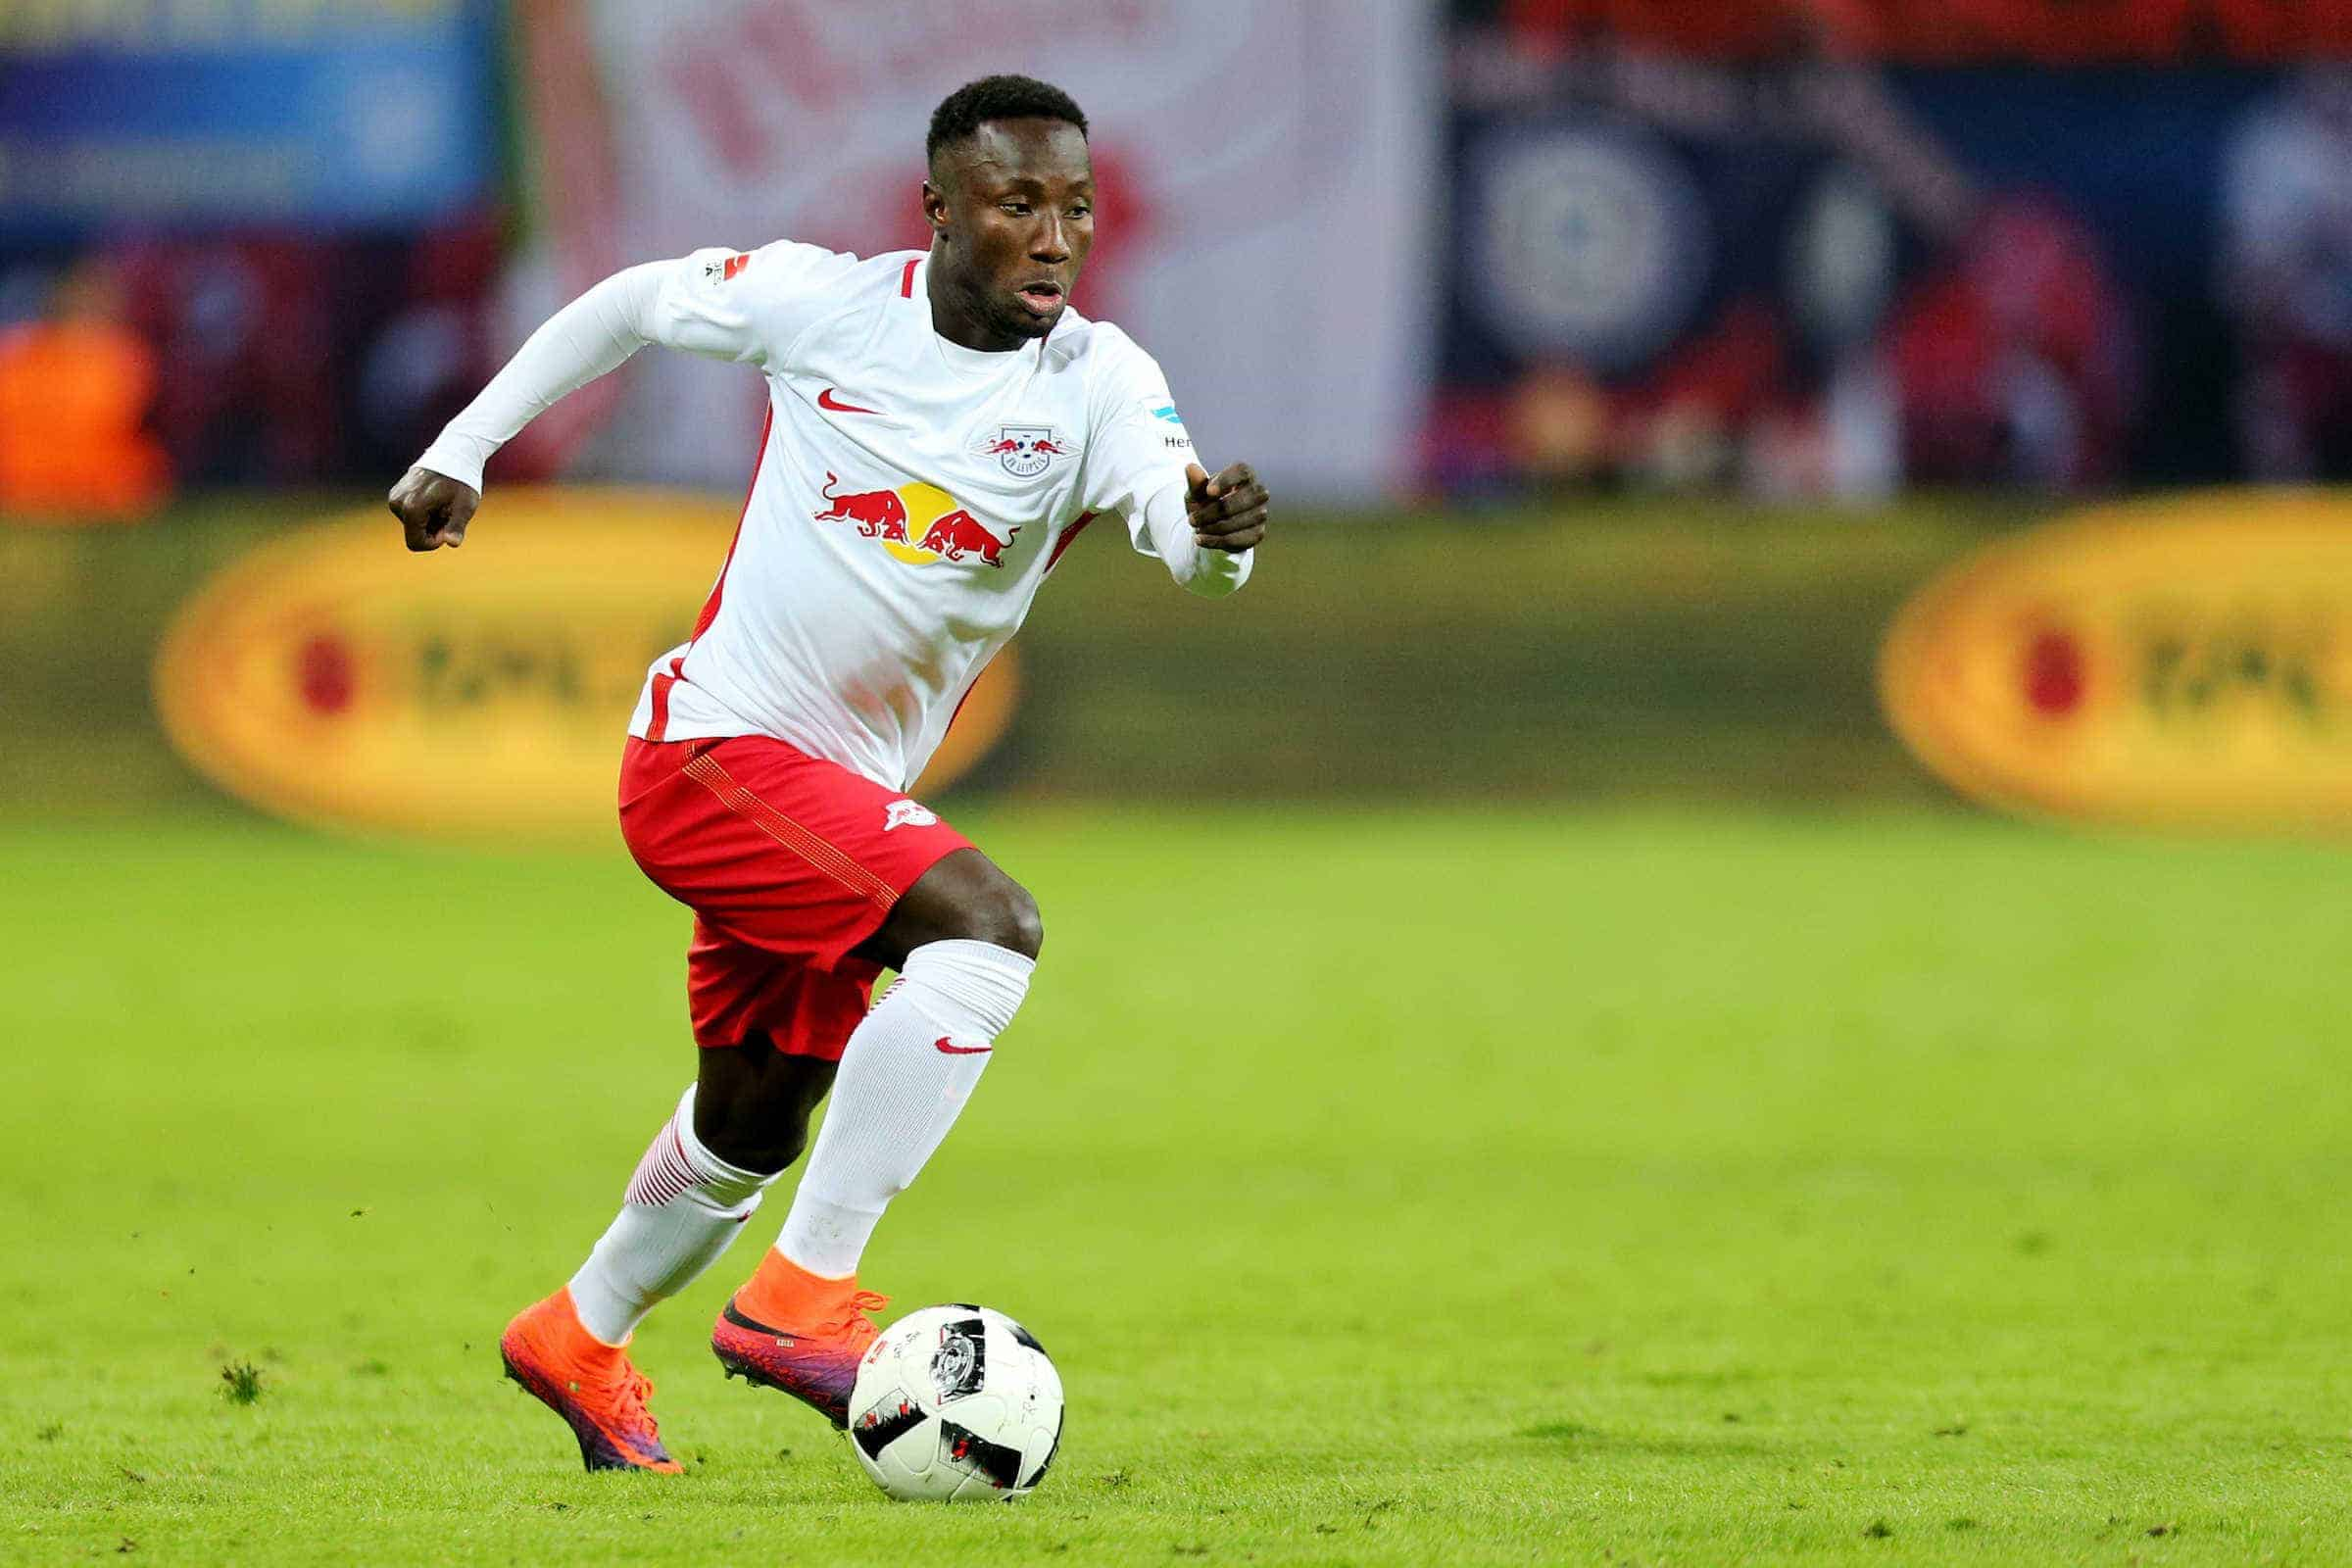 Liverpool to make improved offer to RB Leipzig for Naby Keita - Liverpool  FC - This Is Anfield